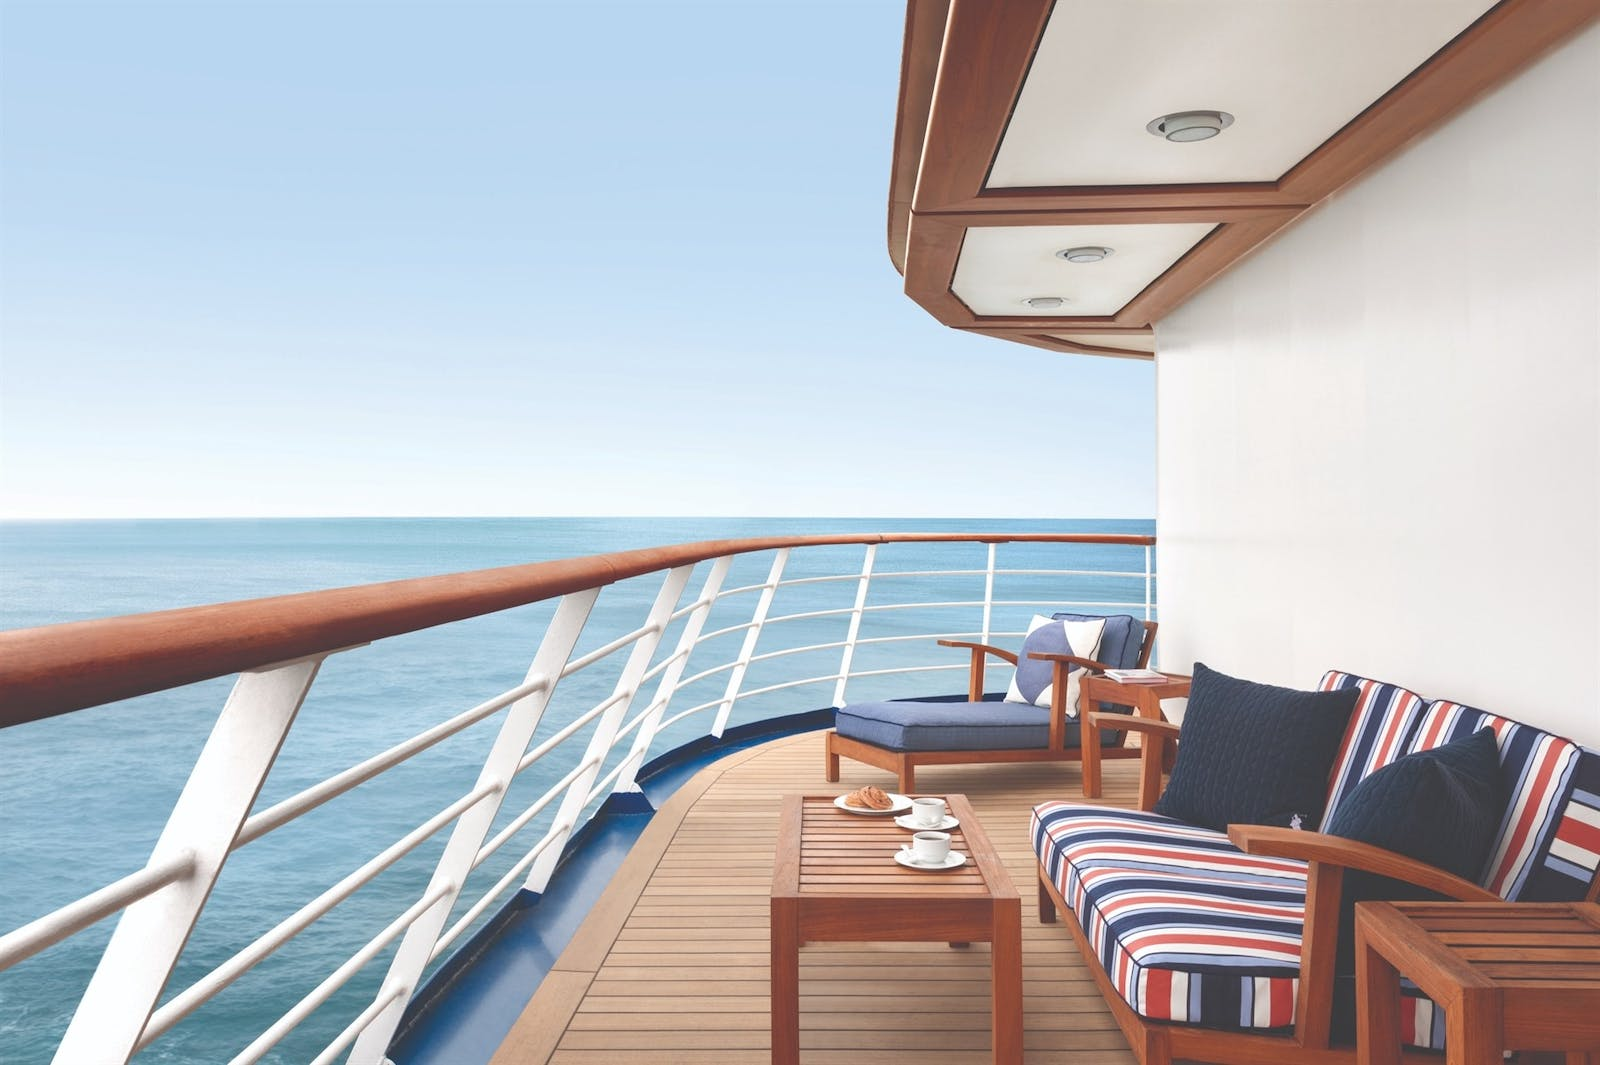 Suite Deck on the Oceania Riveria